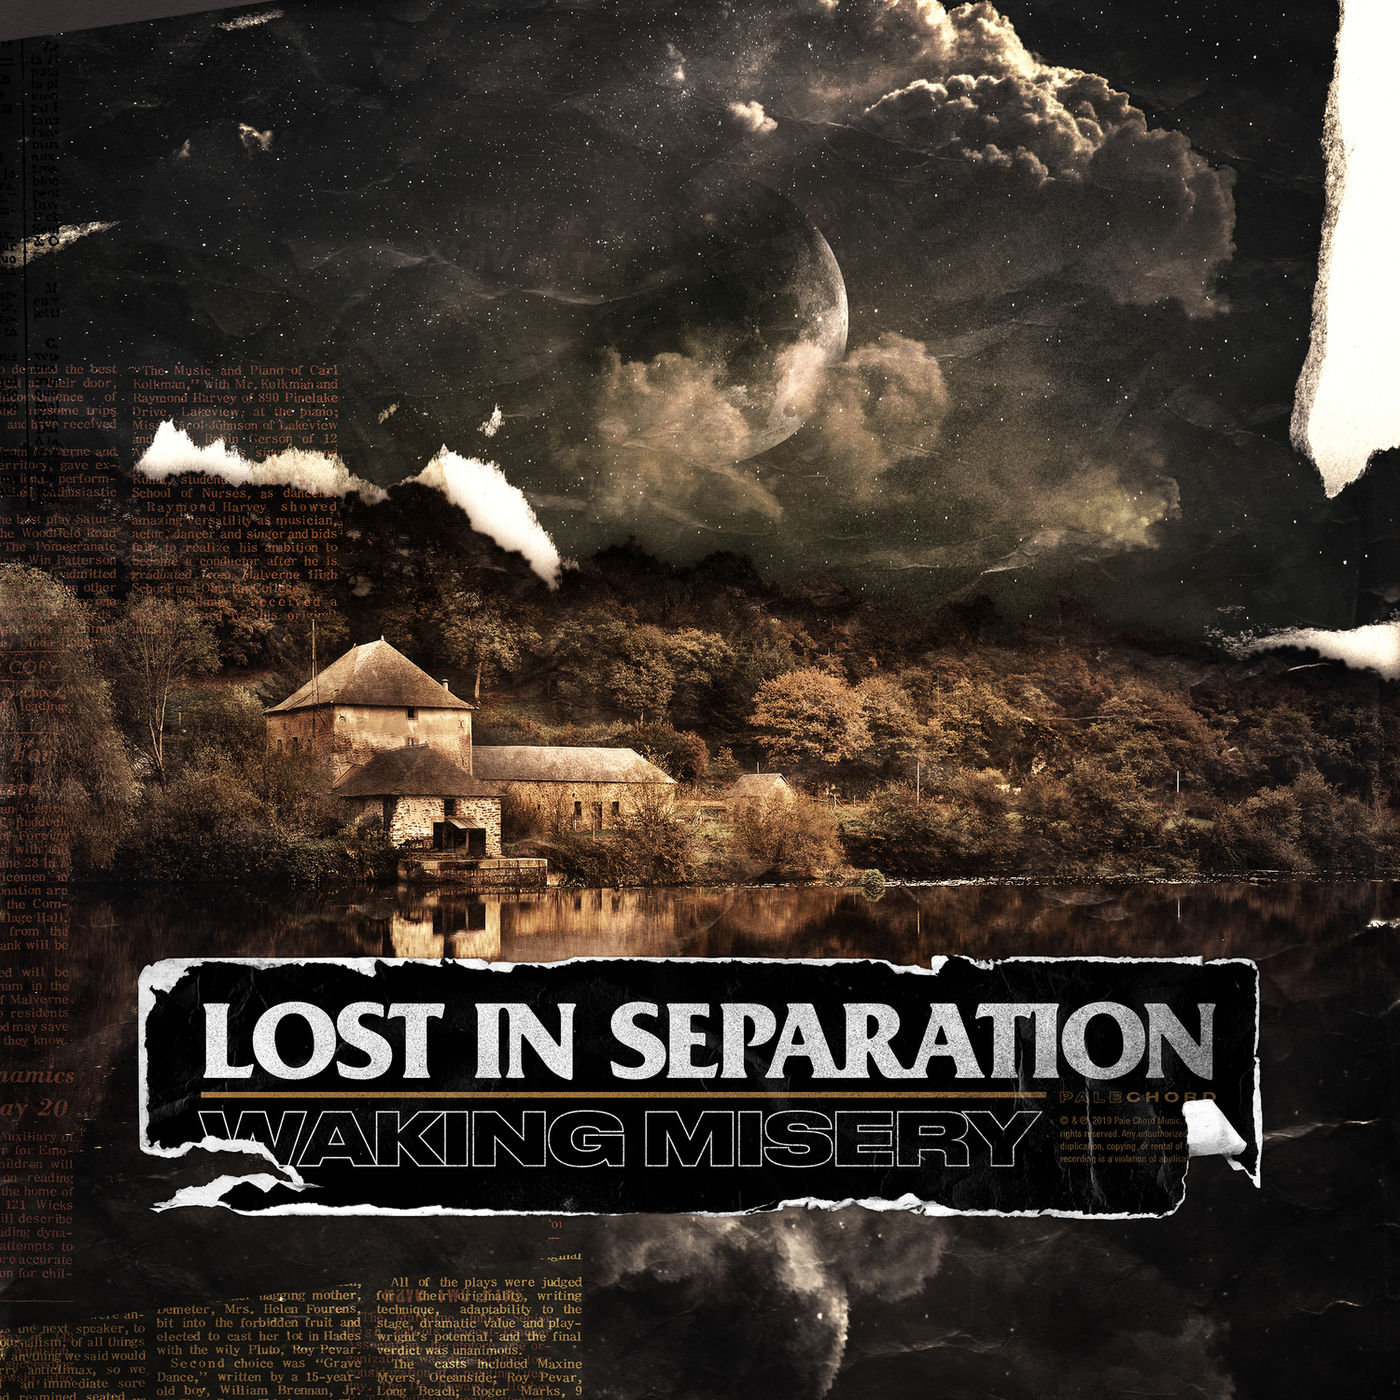 Lost in Separation - Waking Misery [single] (2019)